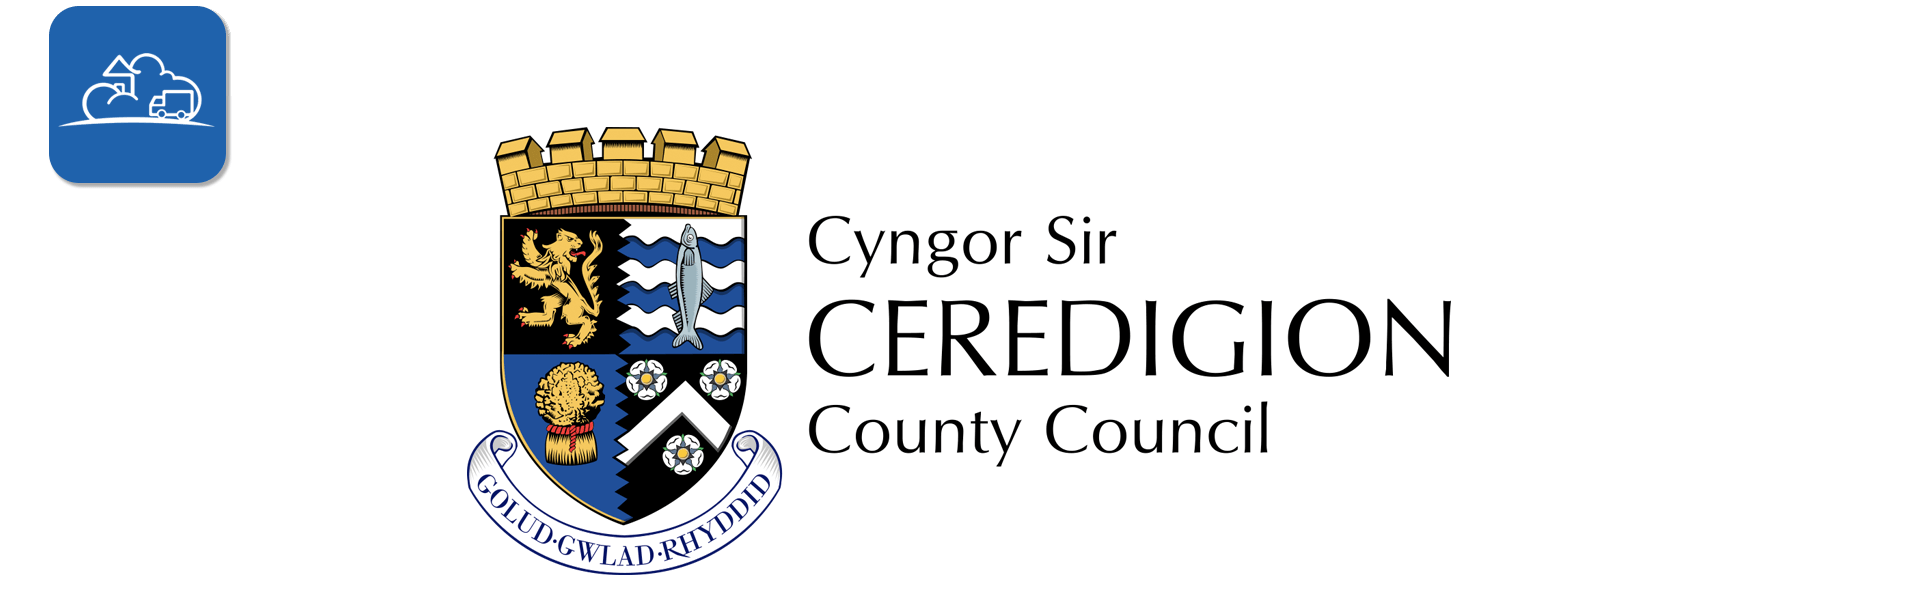 ceredigion county council logo banner